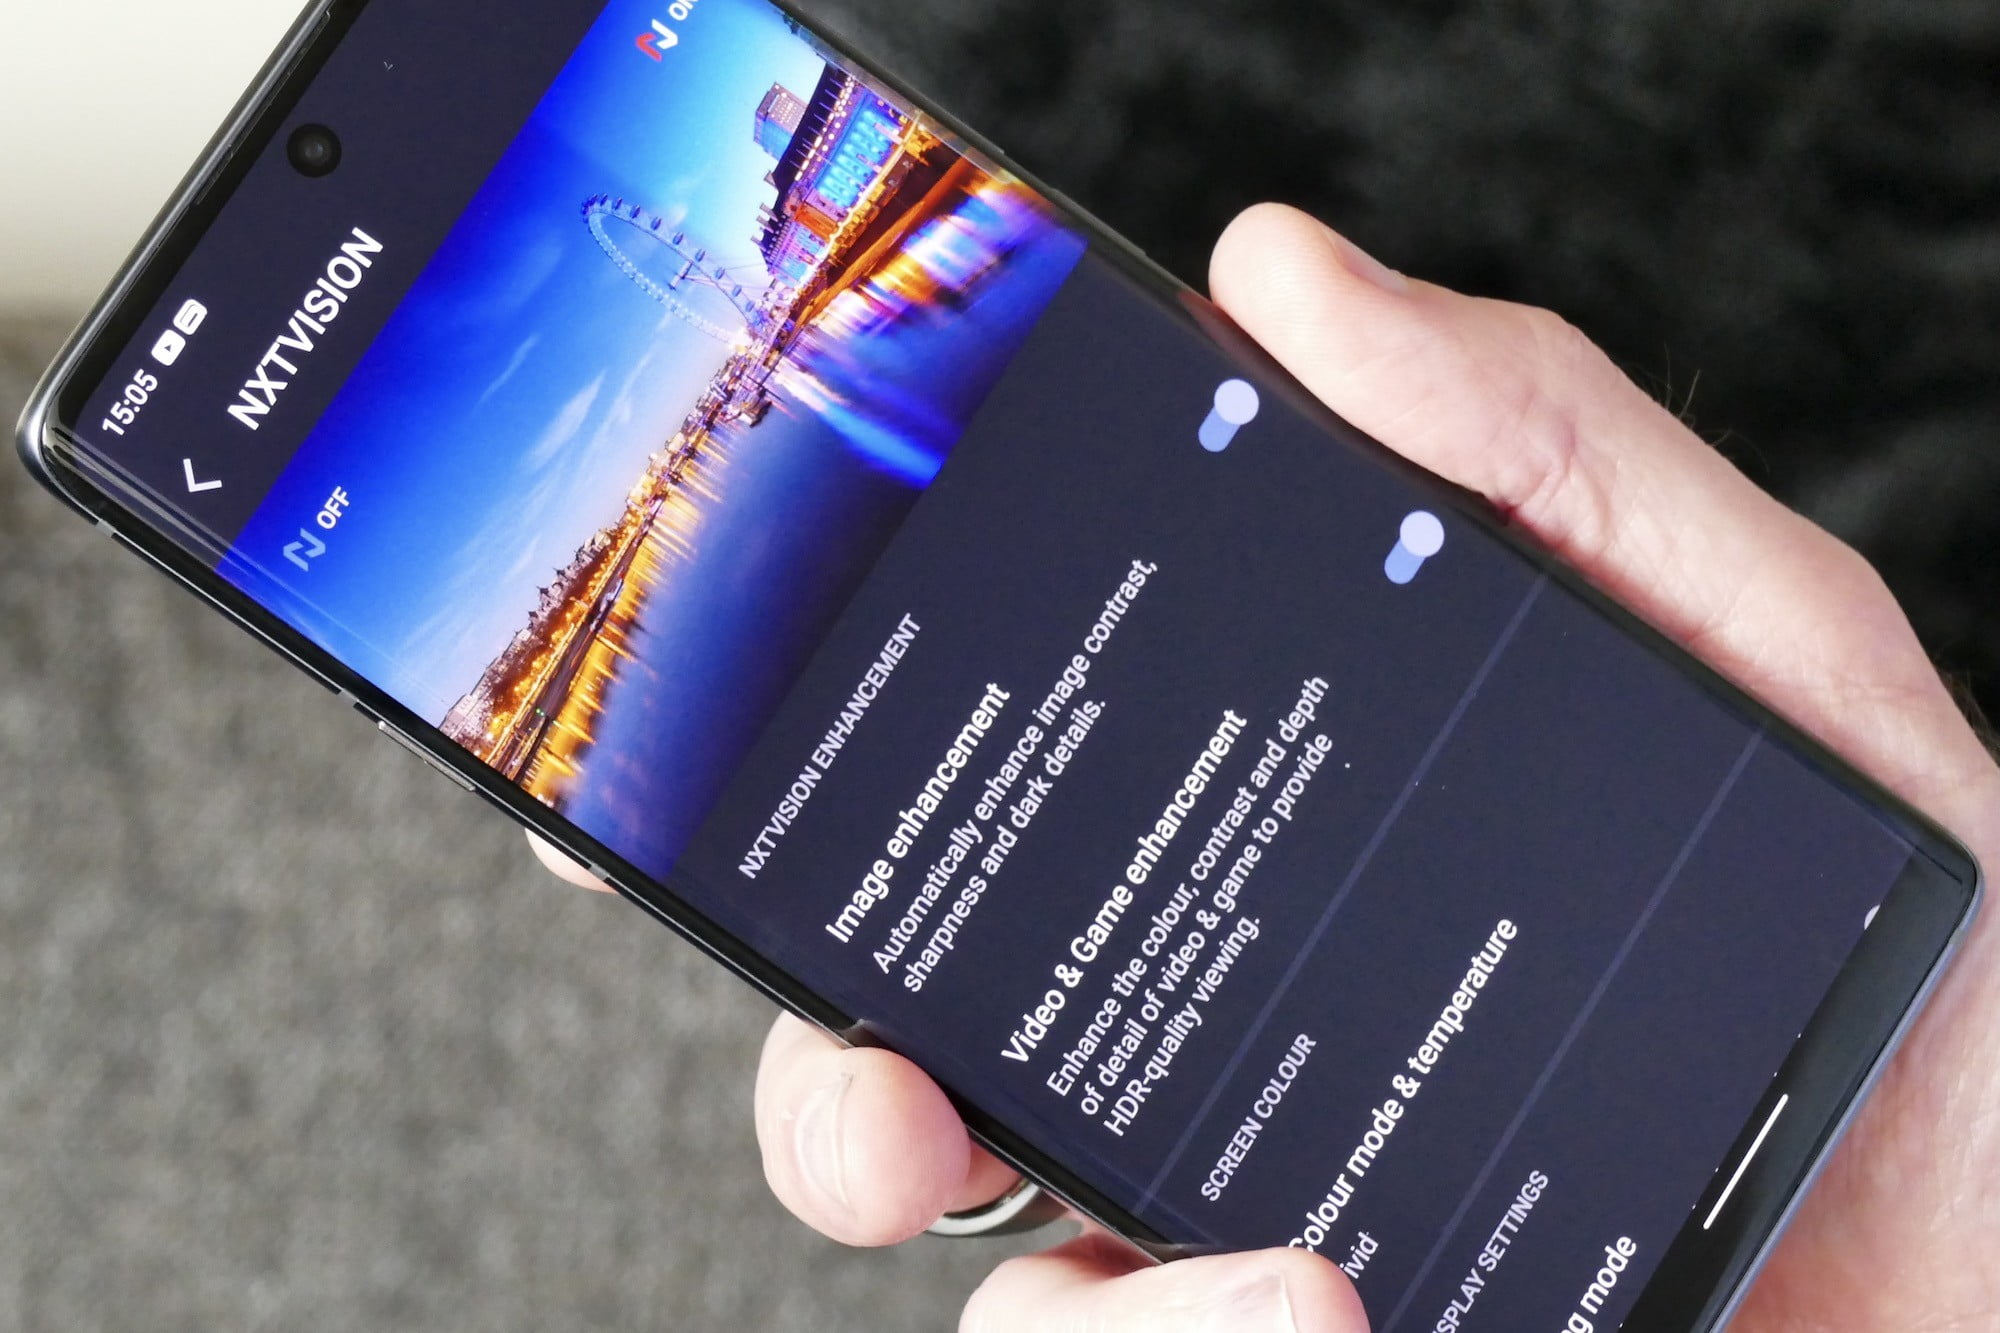 NXTVISION settings on the TCL 20 Pro 5G.